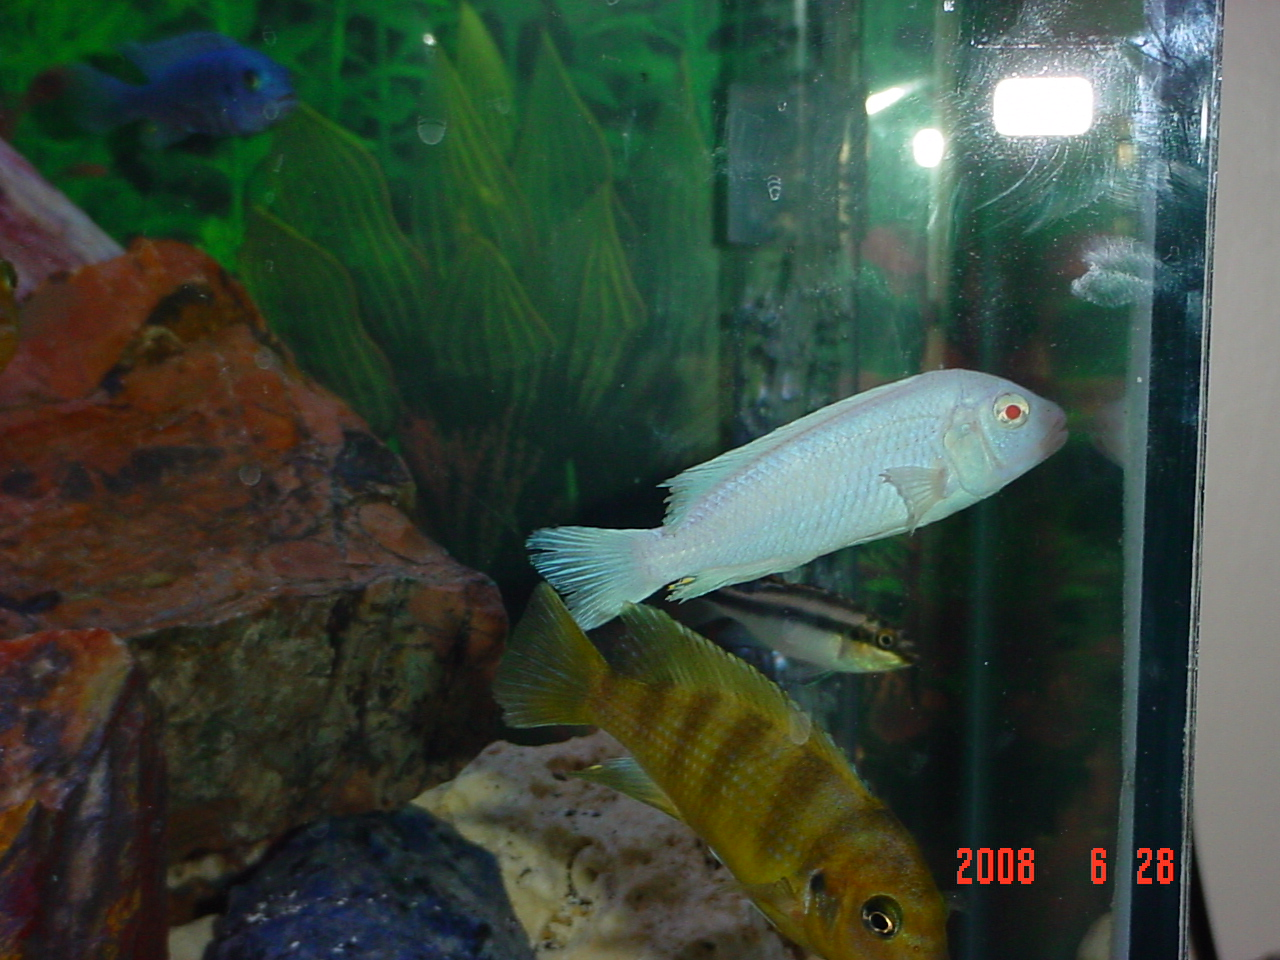 Freshwater aquarium fish with red eyes - Melanochromis Vermivorus Albino